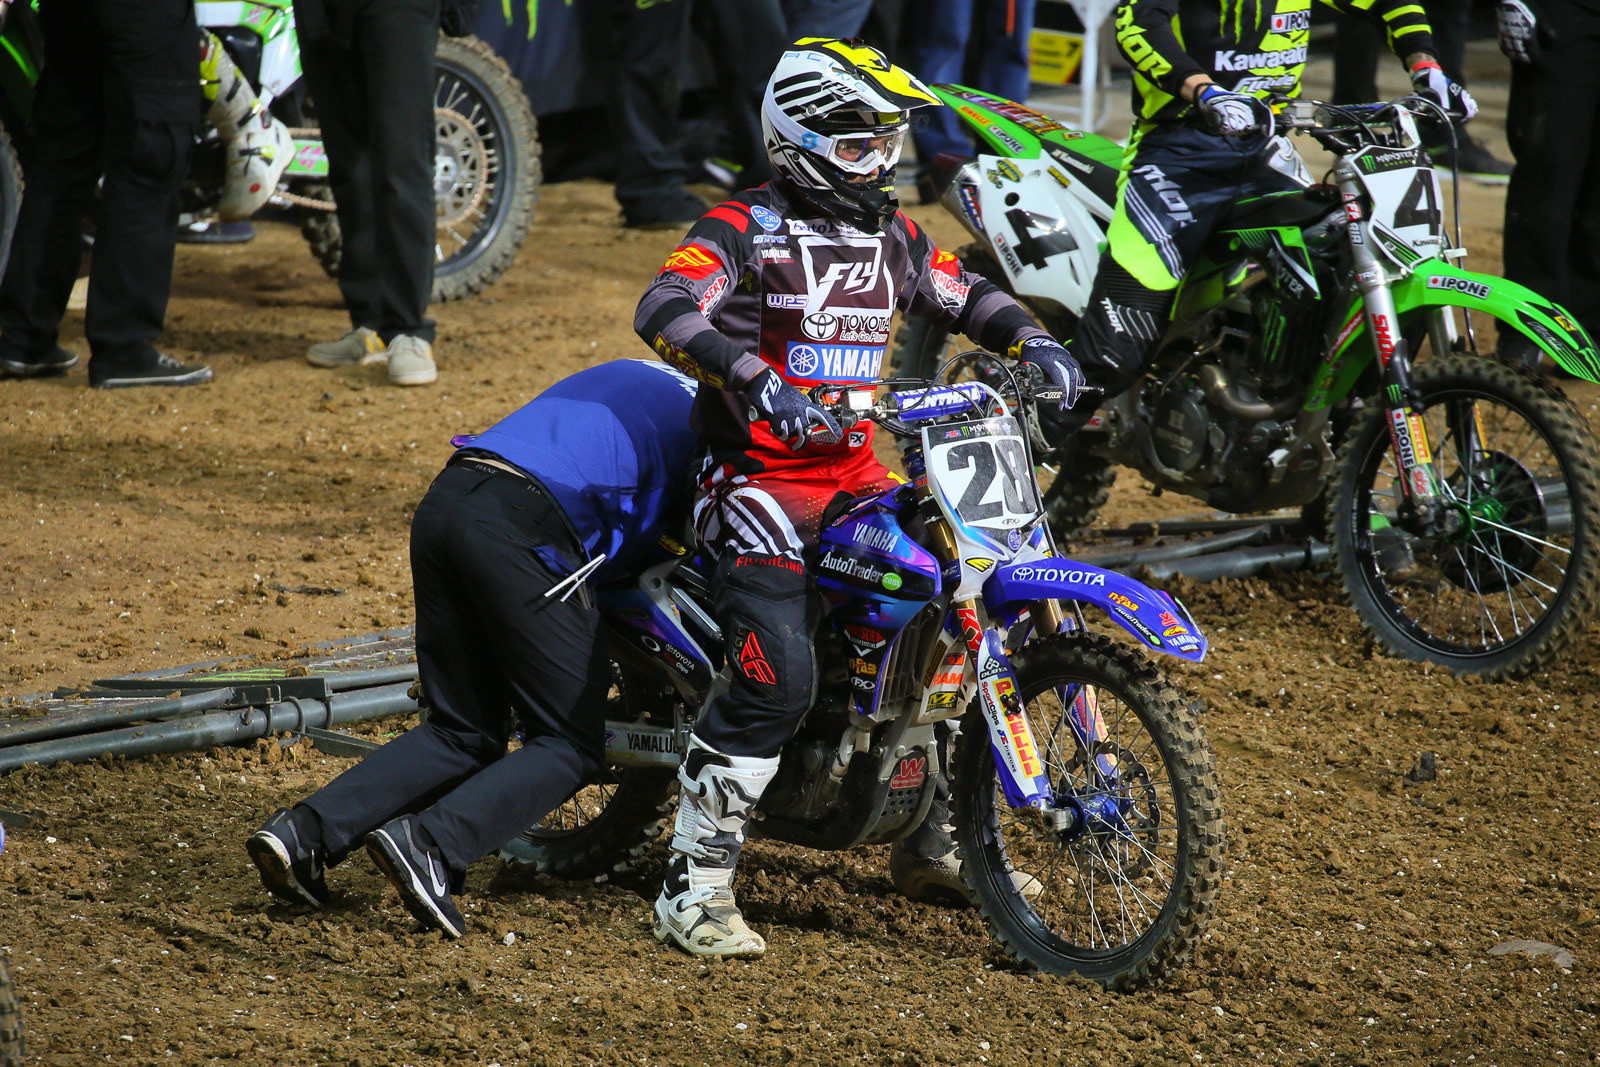 Rear link - Vital MX Pit Bits: Paris-Lille Supercross - Motocross Pictures - Vital MX